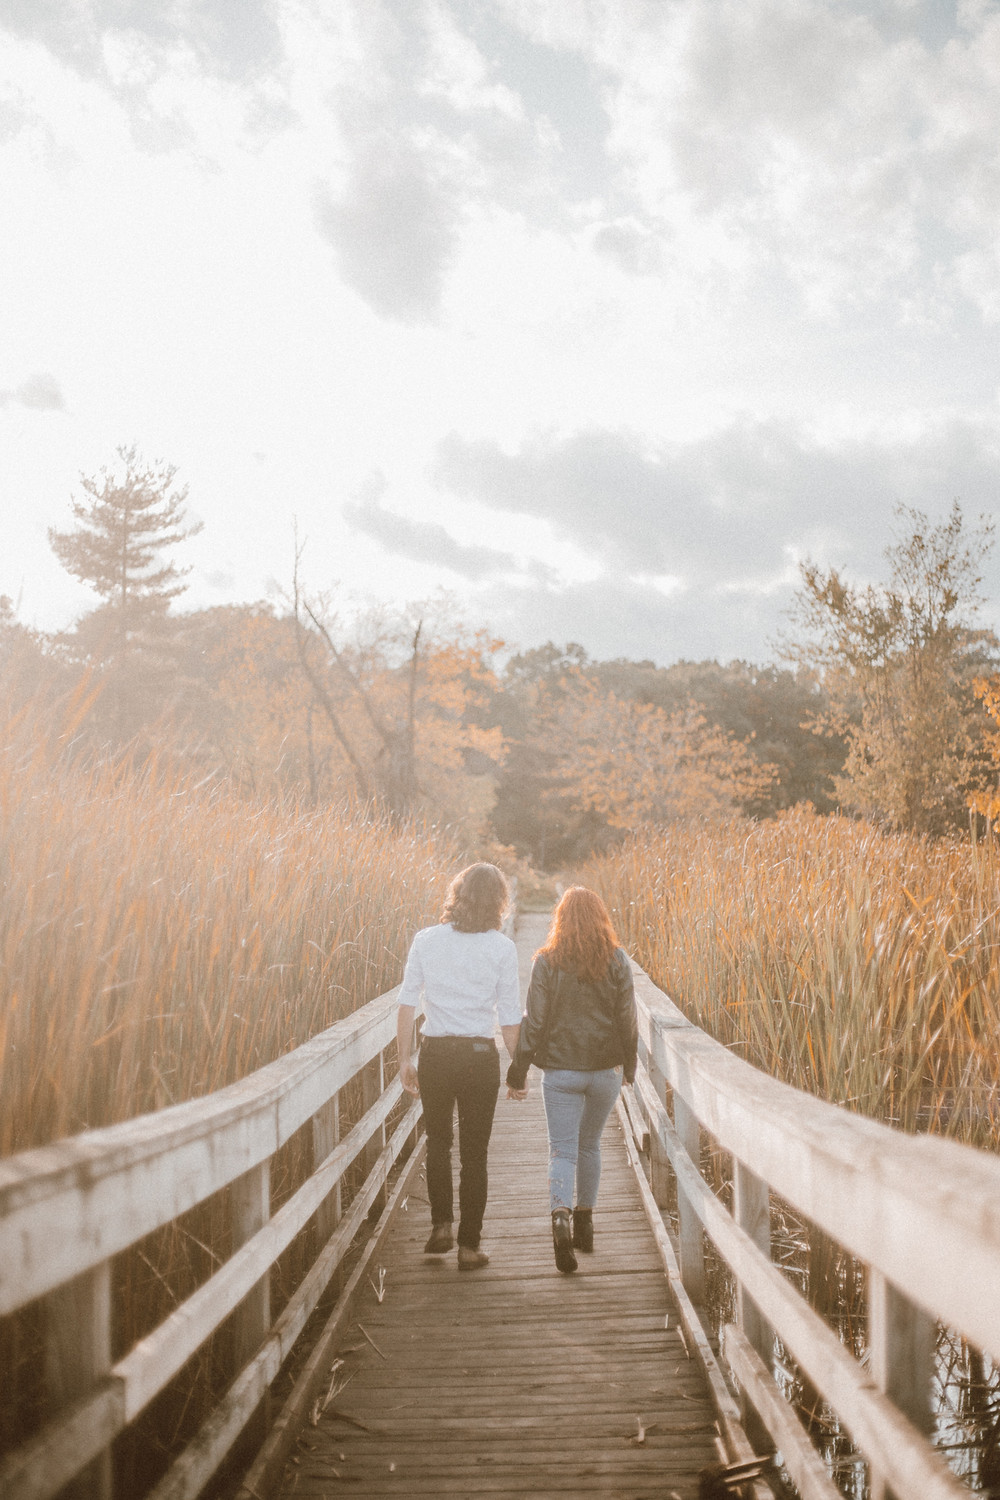 Couple walks down bridge holding hands. Lifestyle engagement photography by Anna Gutermuth.